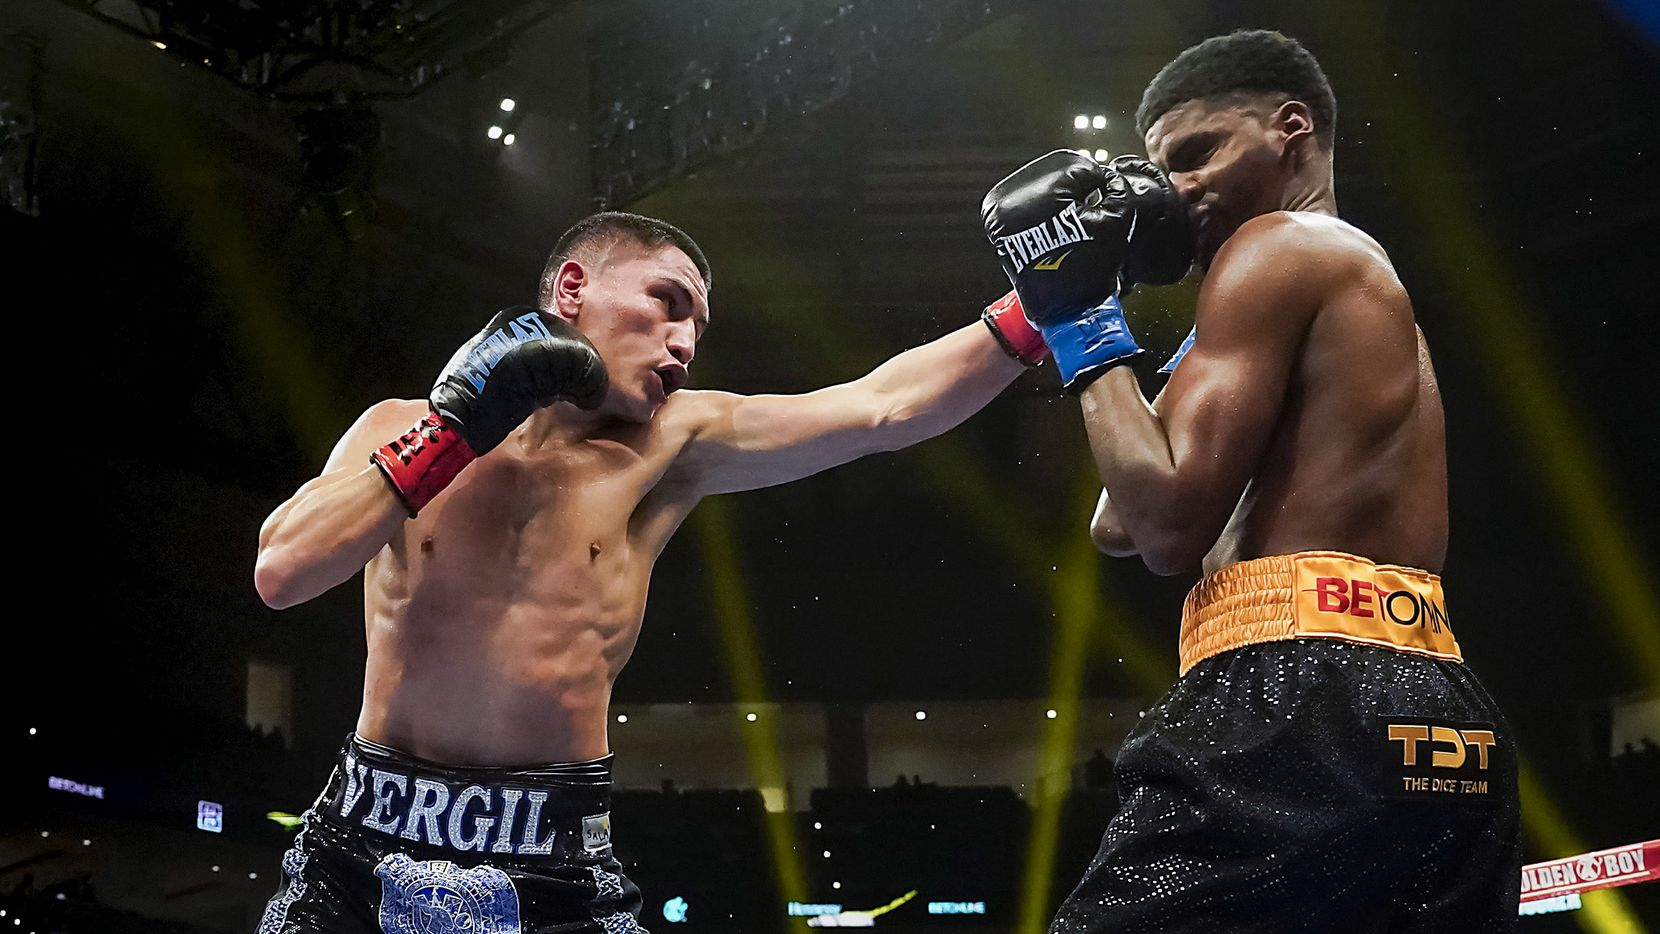 Vergil Ortiz Jr. (left) lands a punch to the face of Maurice Hooker as they fight for the vacant WBO international welterweight title at Dickies Arena on Saturday, March 20, 2021, in Fort Worth, Texas. (Smiley N. Pool/The Dallas Morning News)